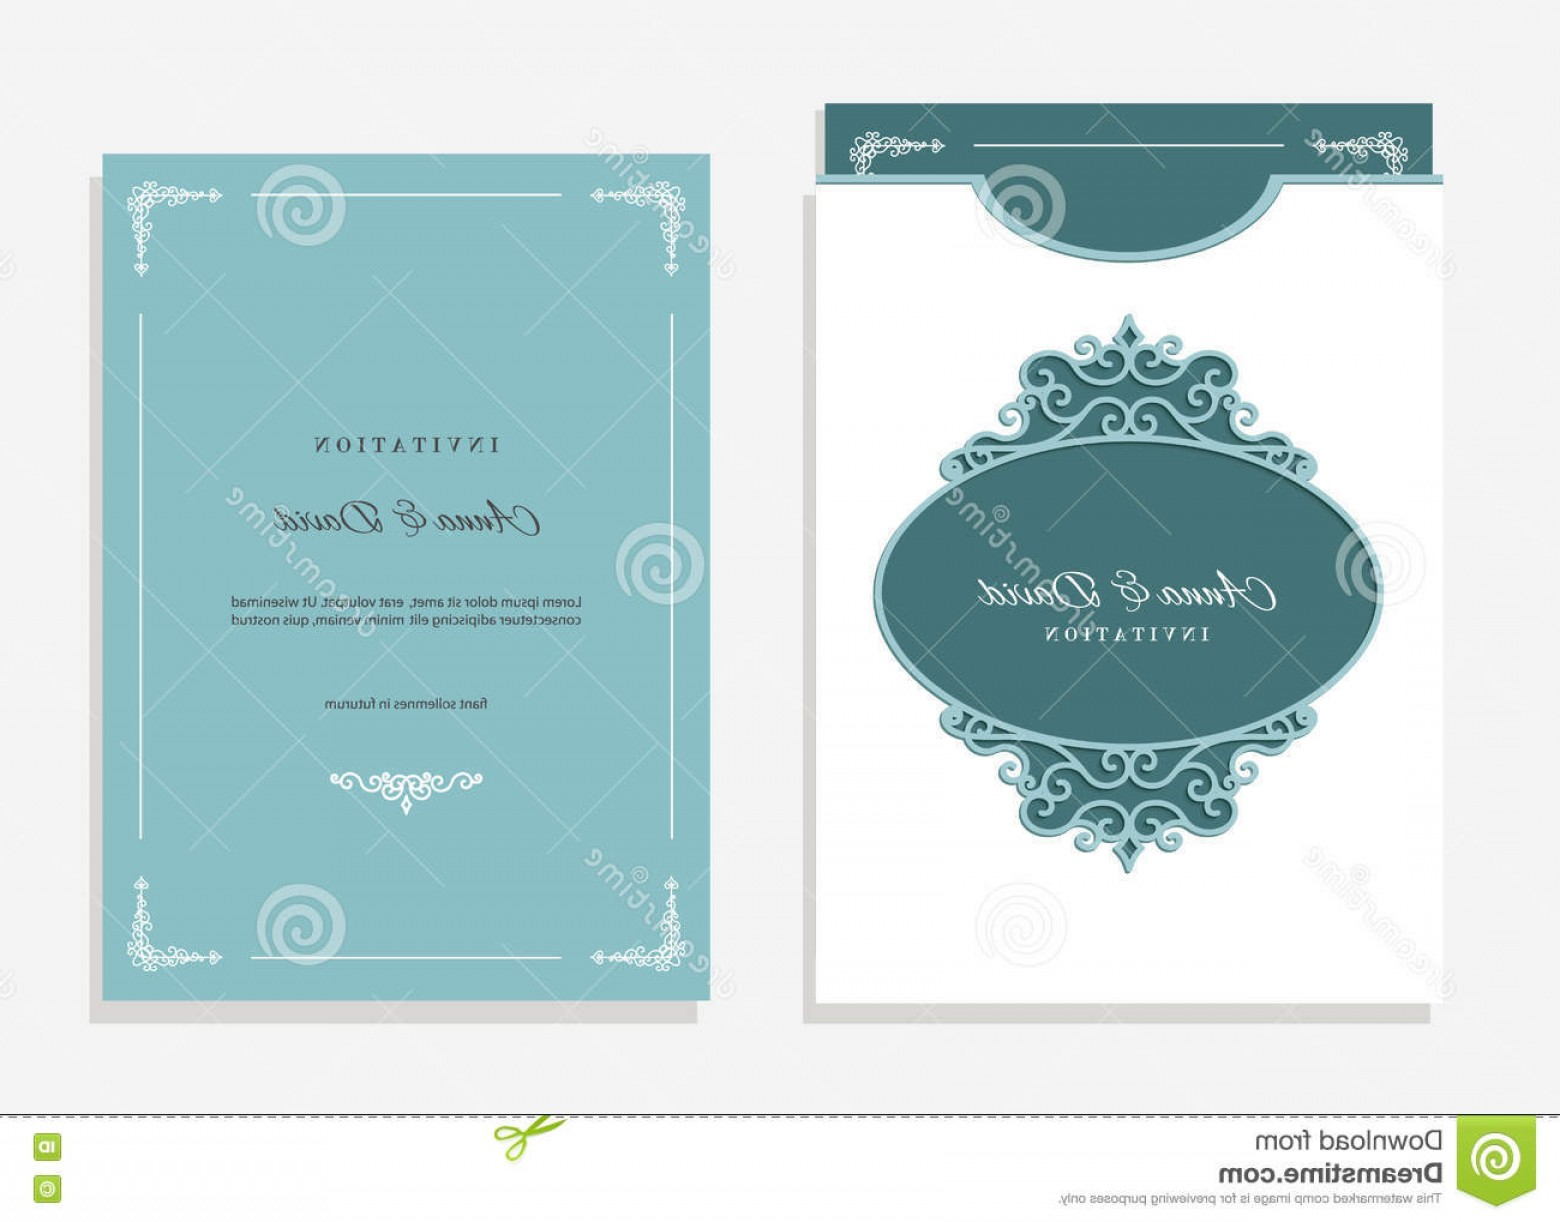 Filigree Oval Frame Vector: Stock Photo Wedding Envelope Template Laser Cutting Invitation Filigree Oval Frame Emerald White Colors Image